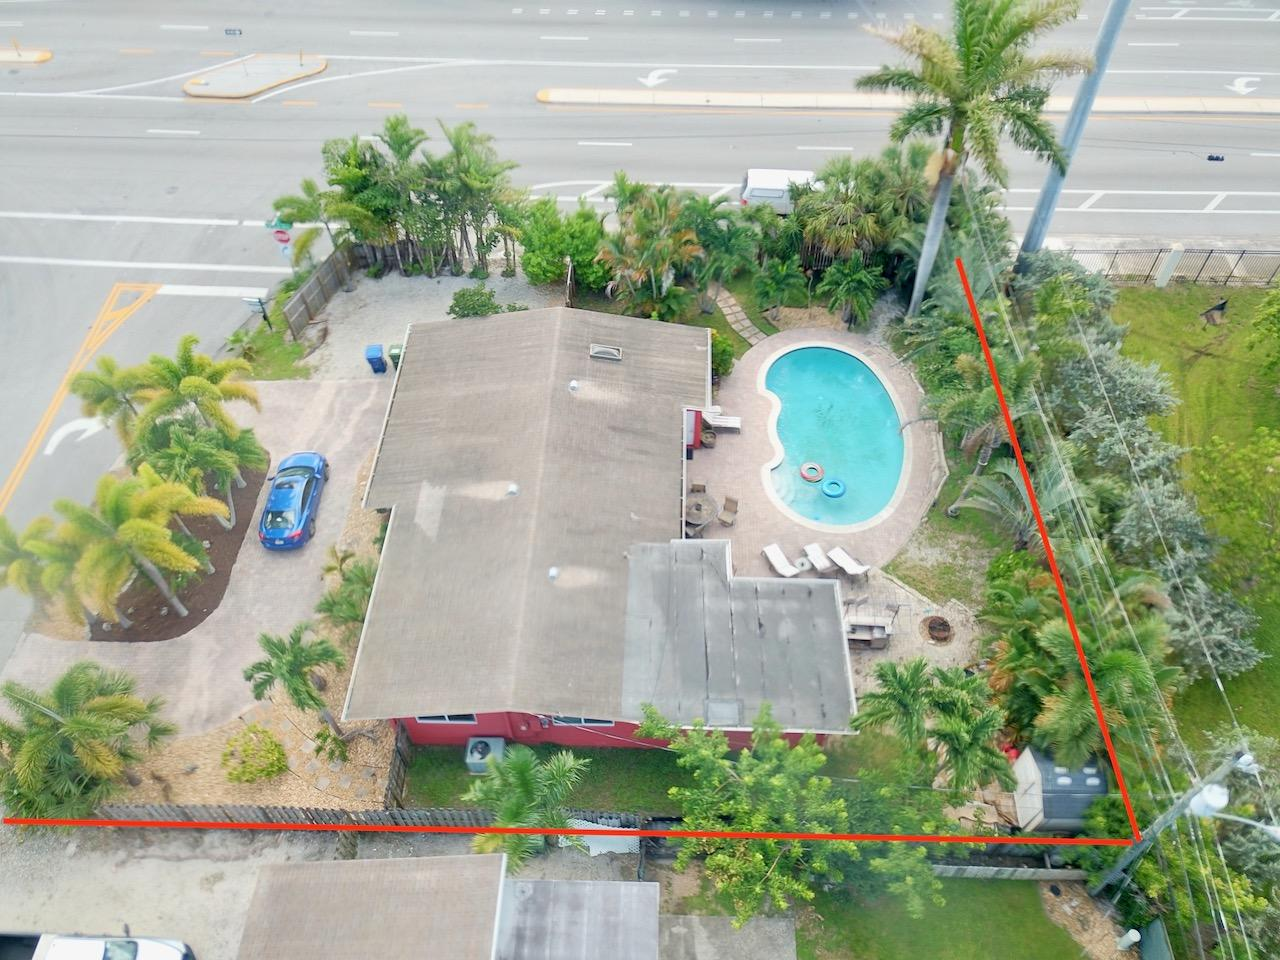 819 NW 26th St, Wilton Manors, FL, 33311